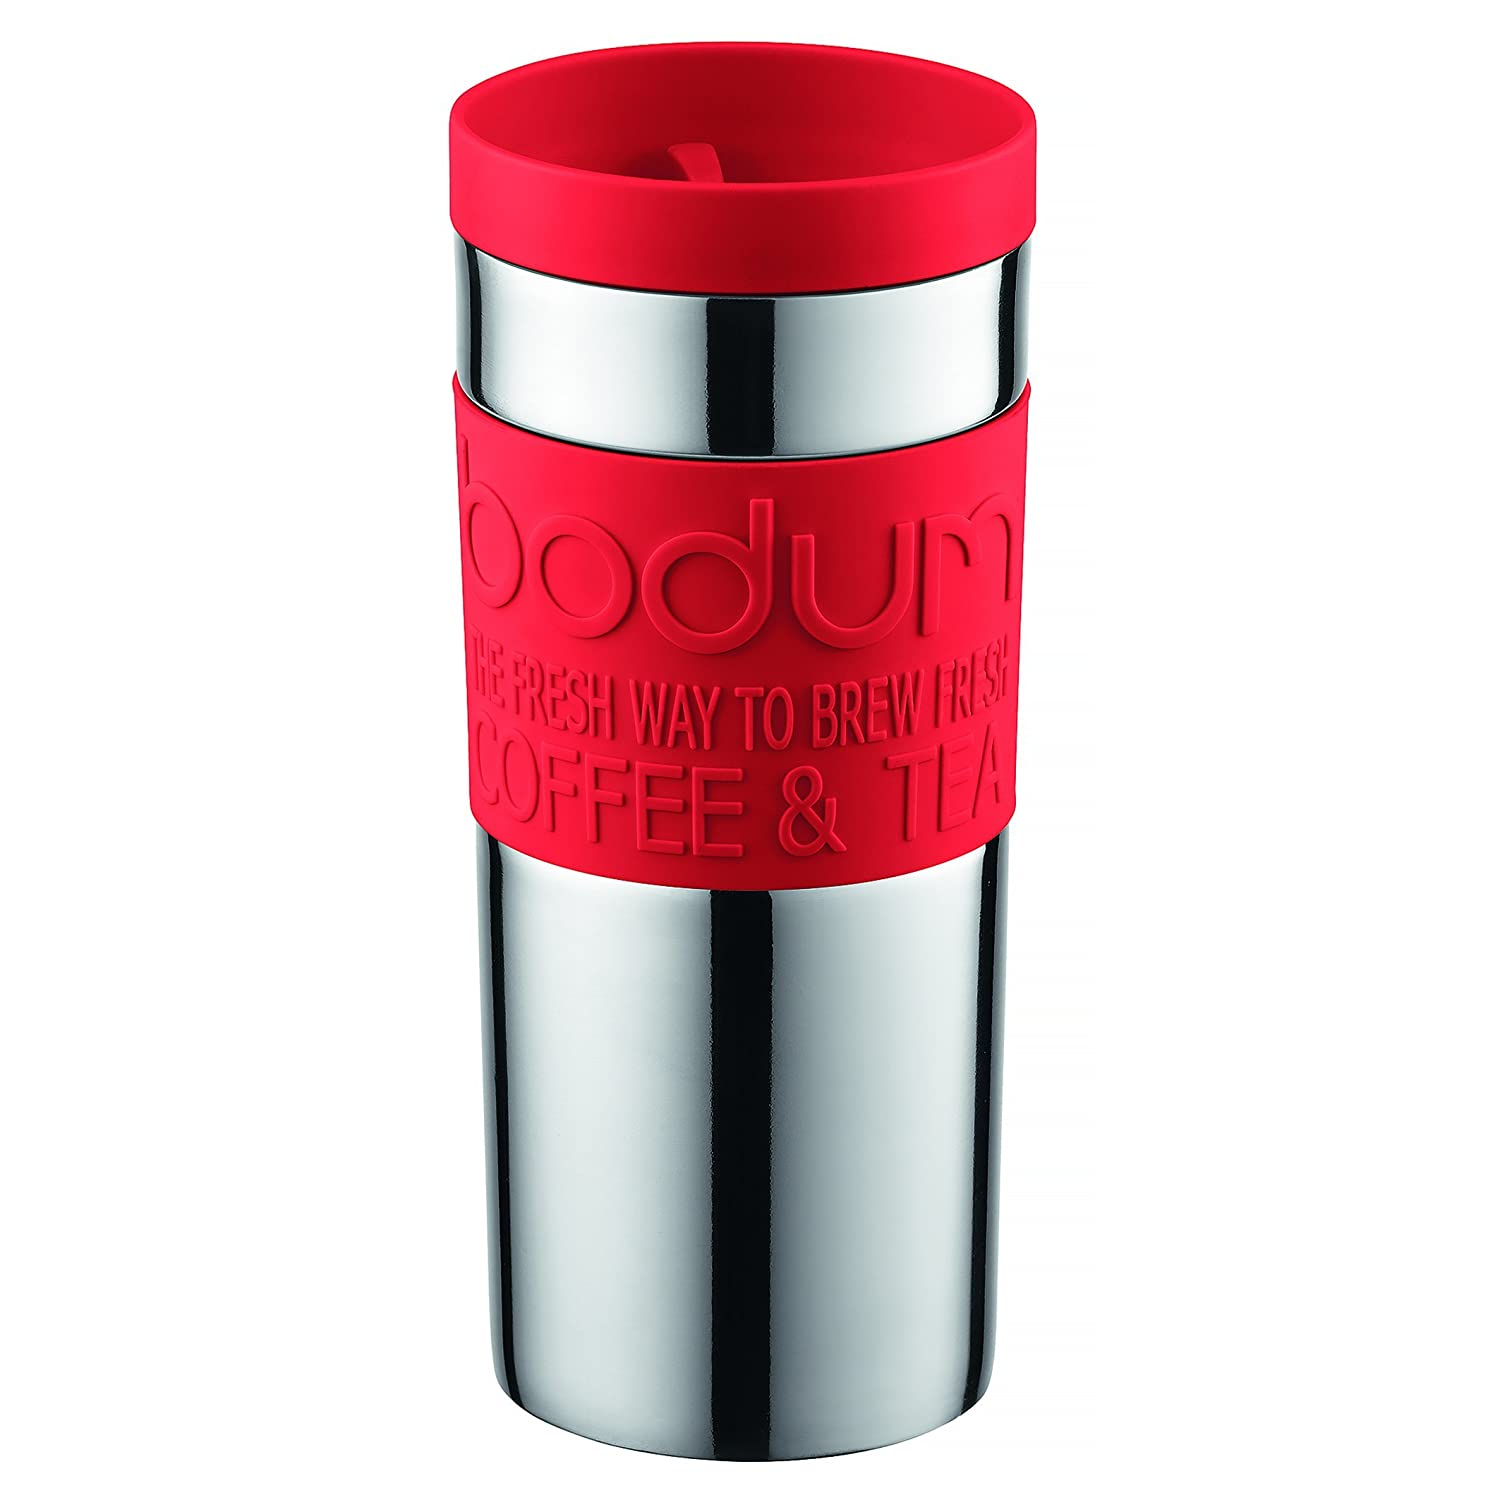 Bodum Travel Mug, Vacuum, Stainless Steel - 0.35 L, Red